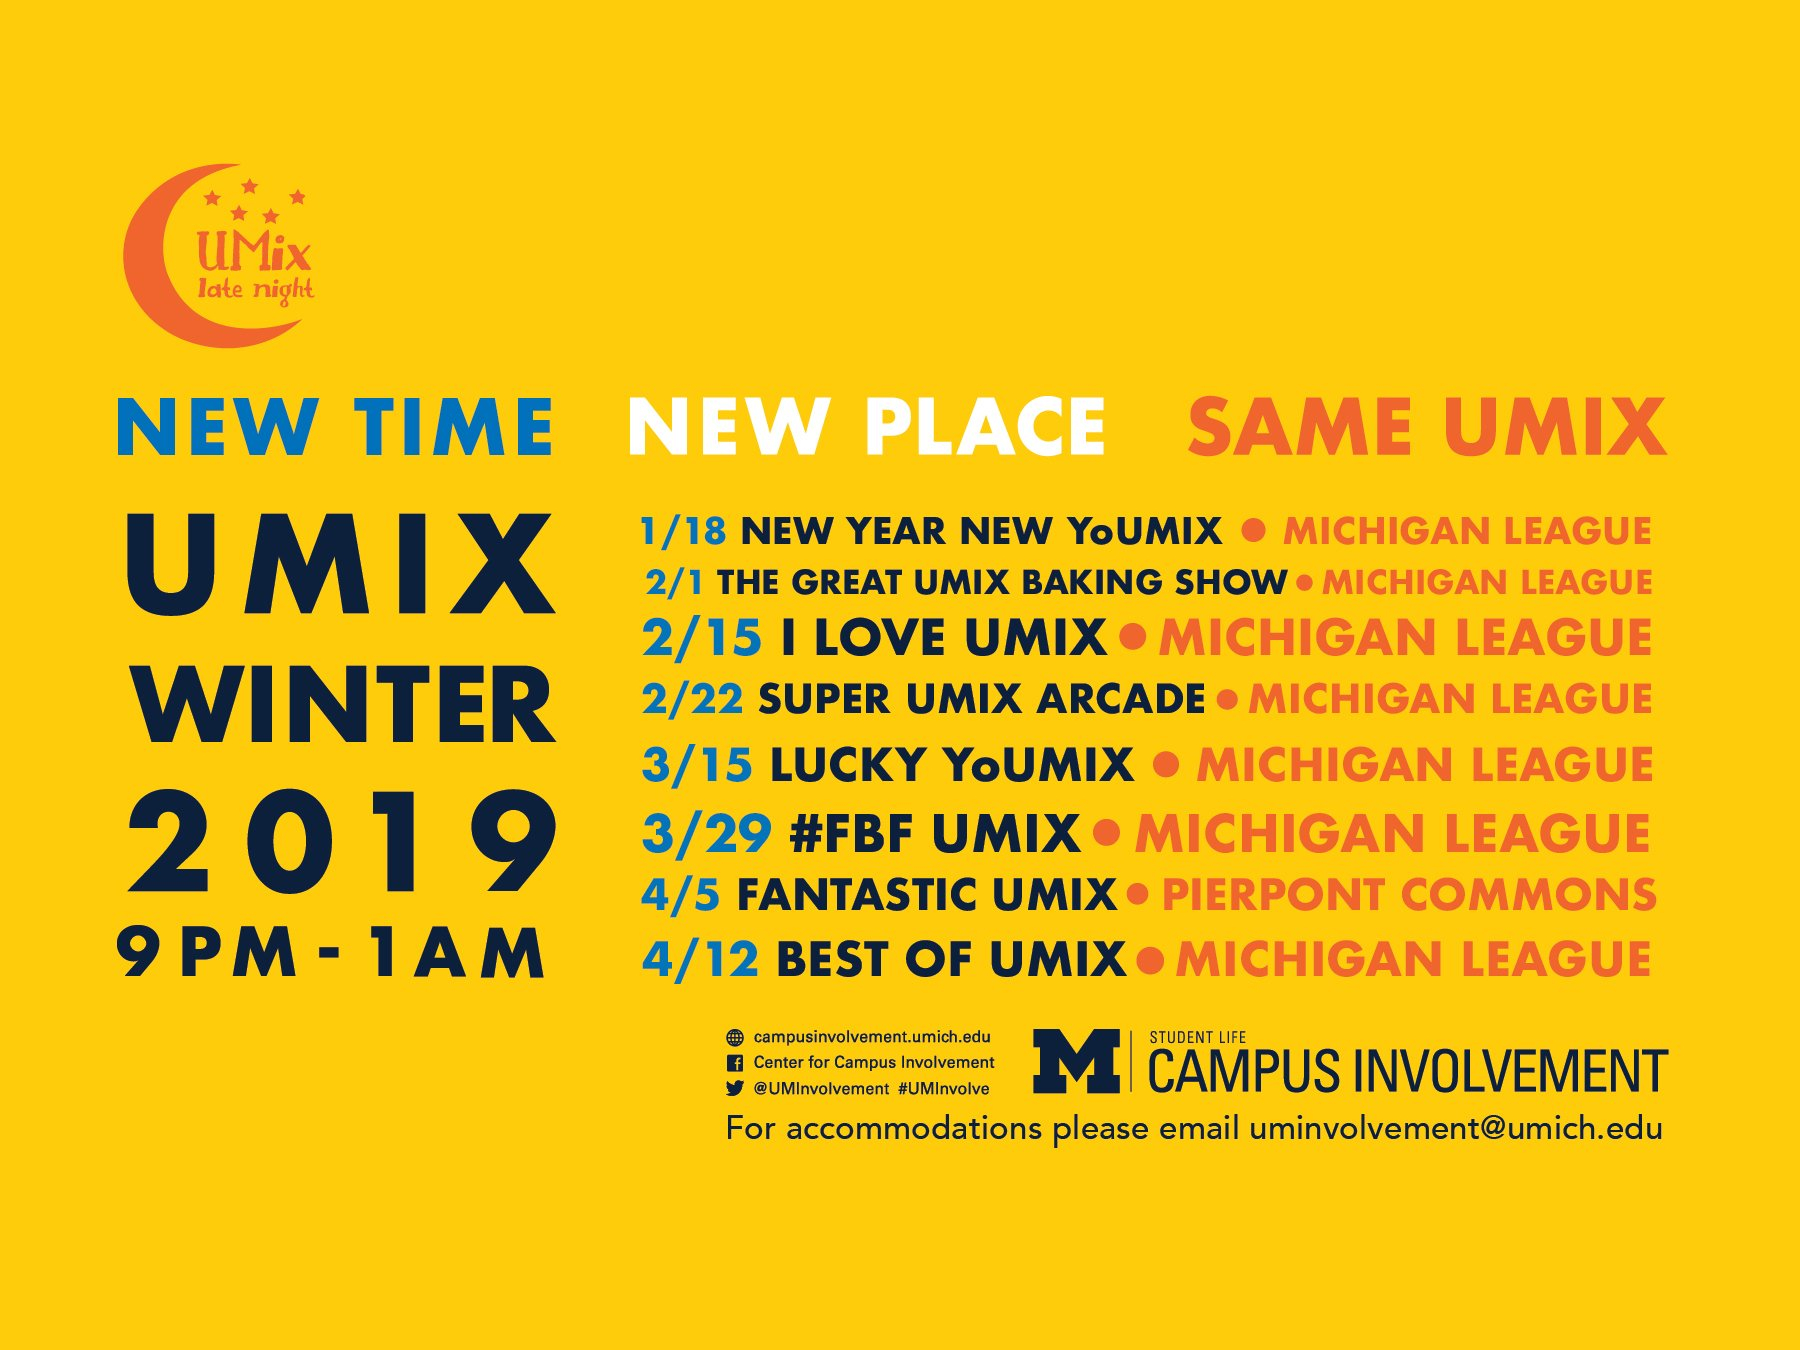 Umix Winter 2019 | Campus Involvement U Michigan Calendar 2019